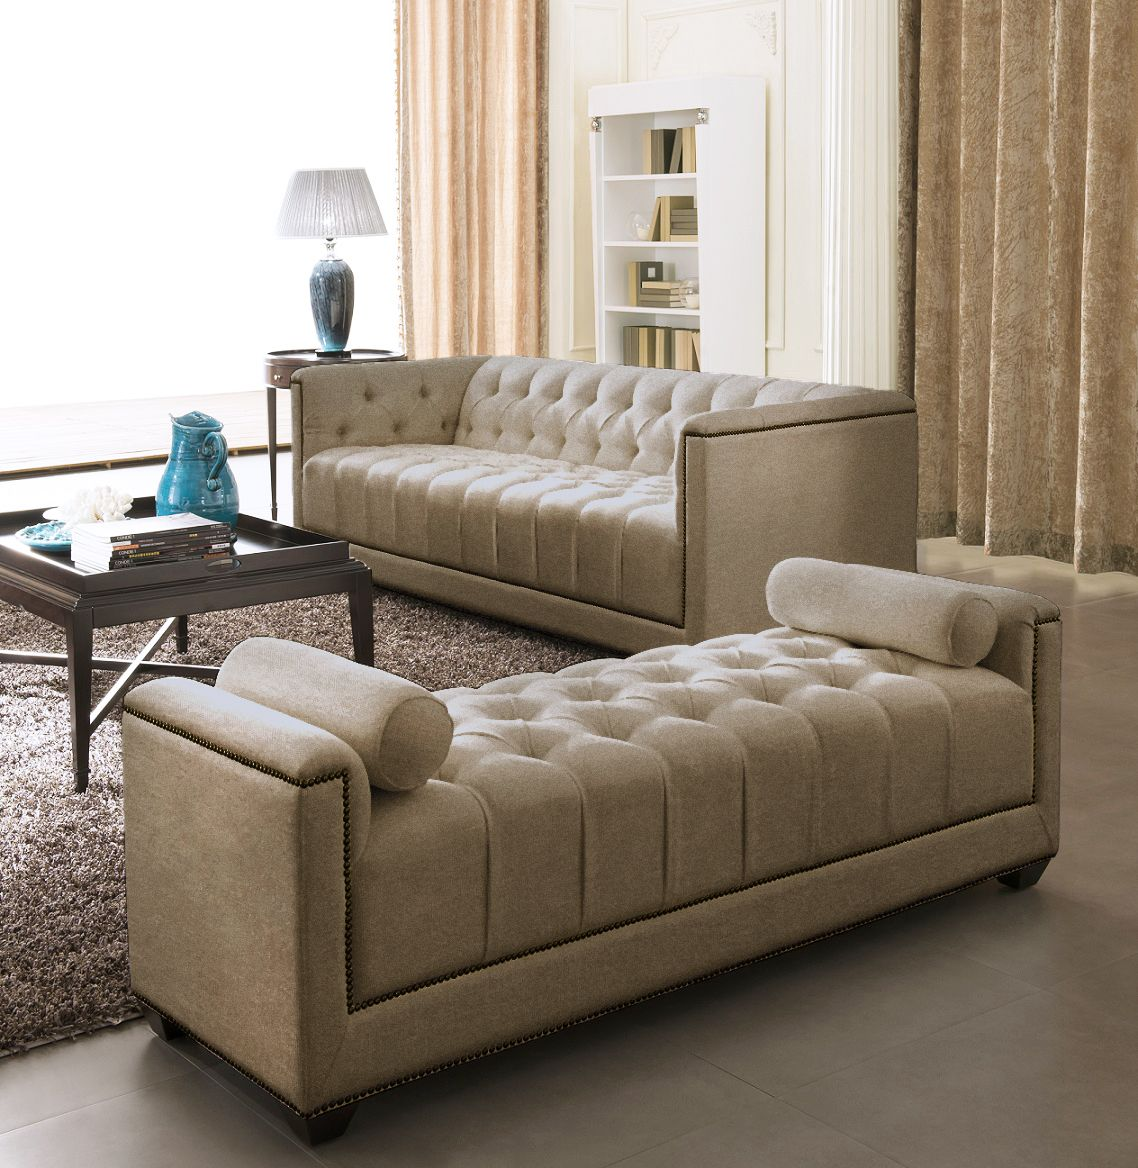 Fabric Sofa Set Eden Gold Home Inspiration Sofa Modern Sofa